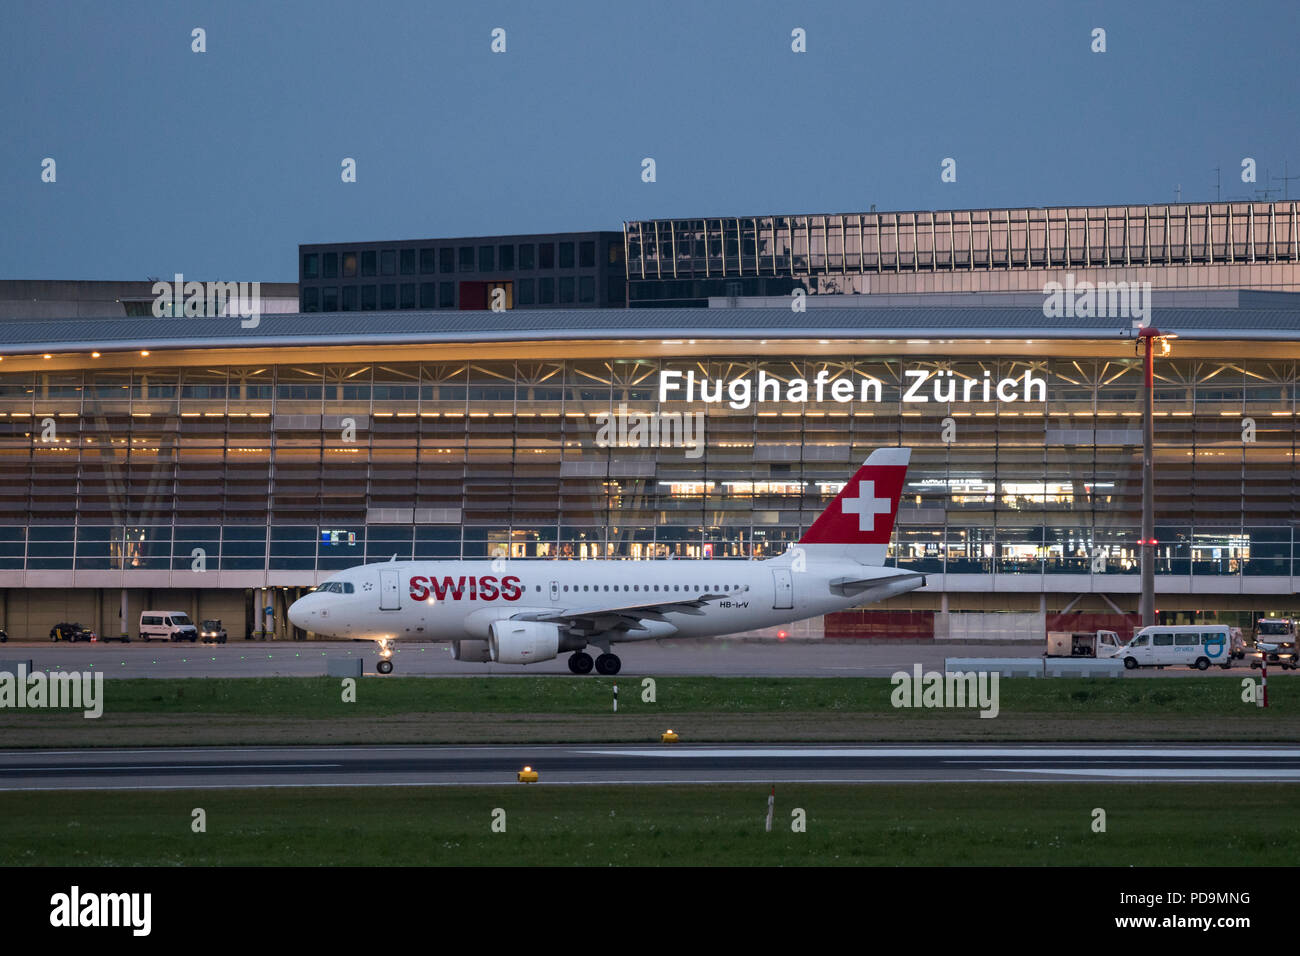 Airbus A319-112 of the Swiss airline at Zurich Airport, at dusk, Zurich, Switzerland - Stock Image